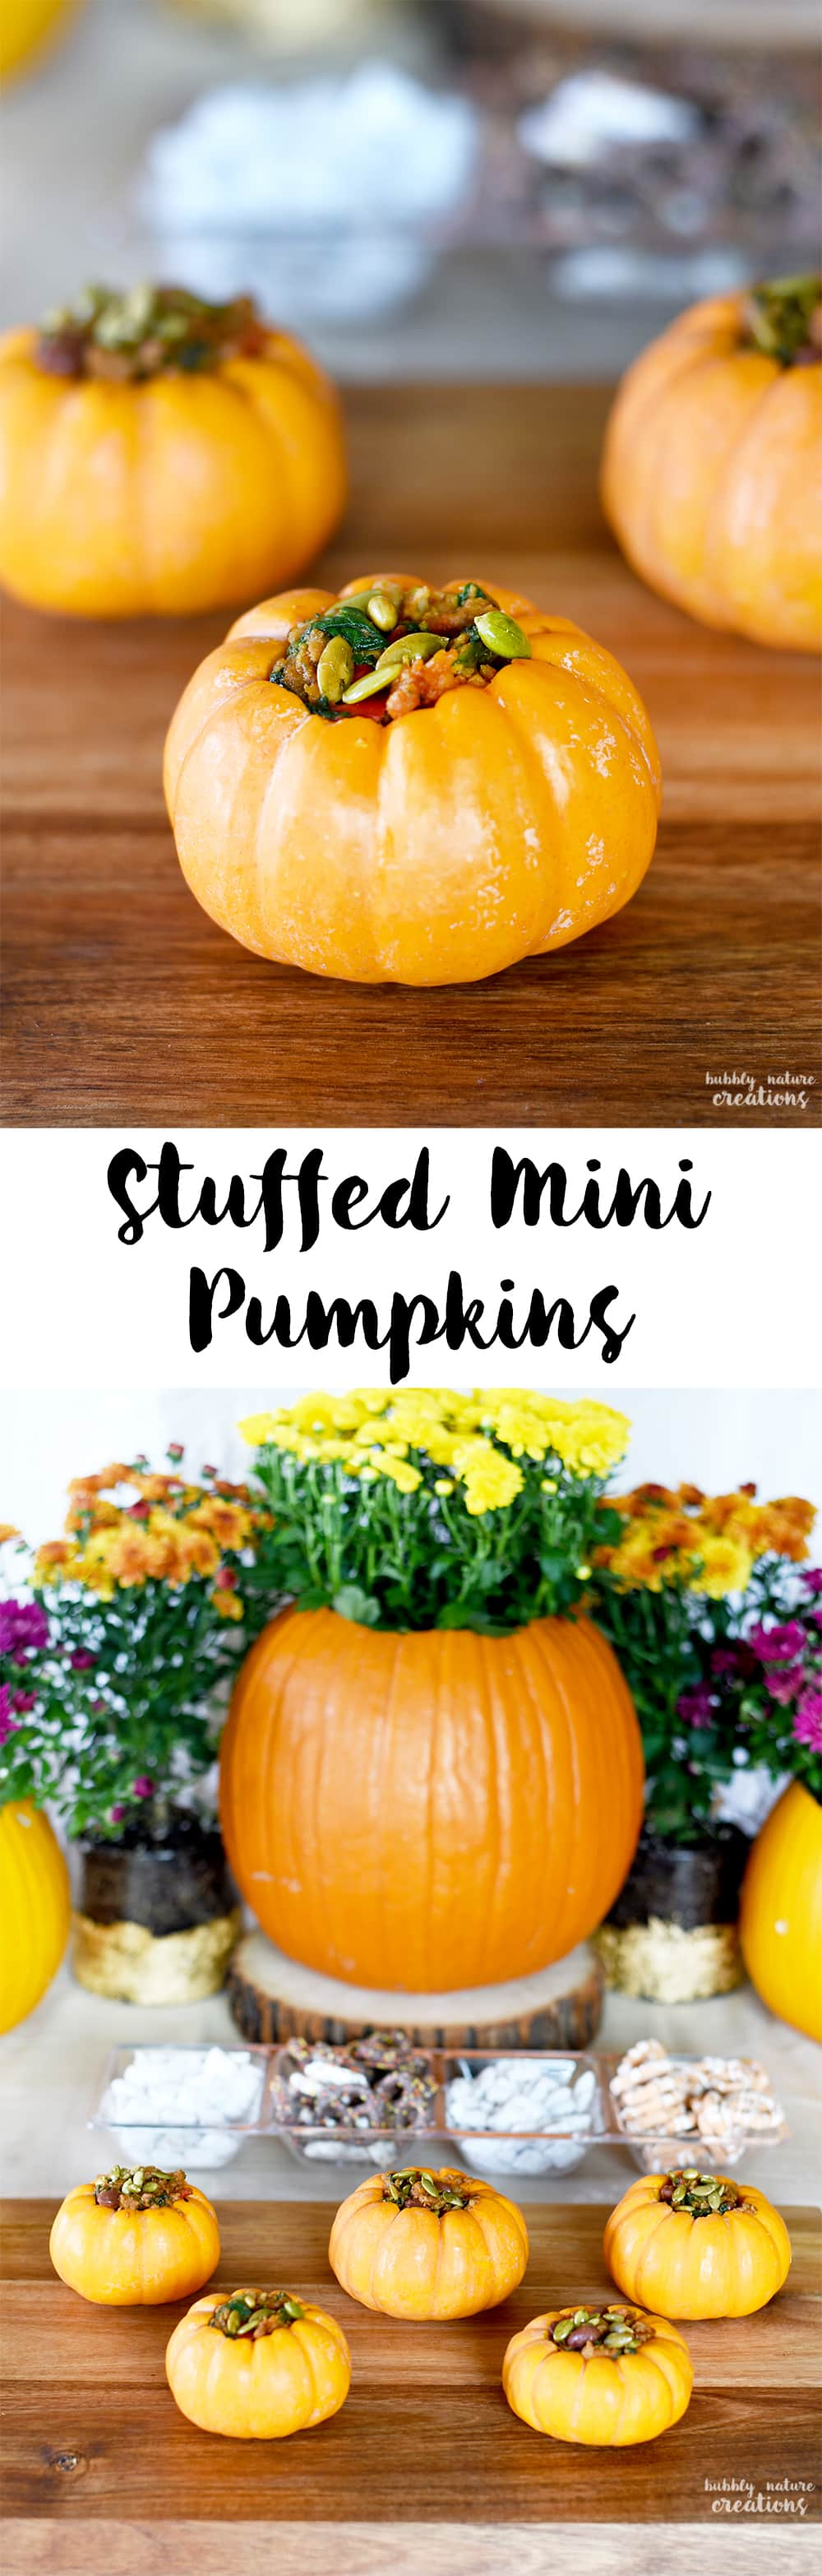 Stuffed Mini Pumpkins! These are such and easy and pretty idea for Thanksgiving or any Fall occasion! Fill them with a savory or sweet filling.